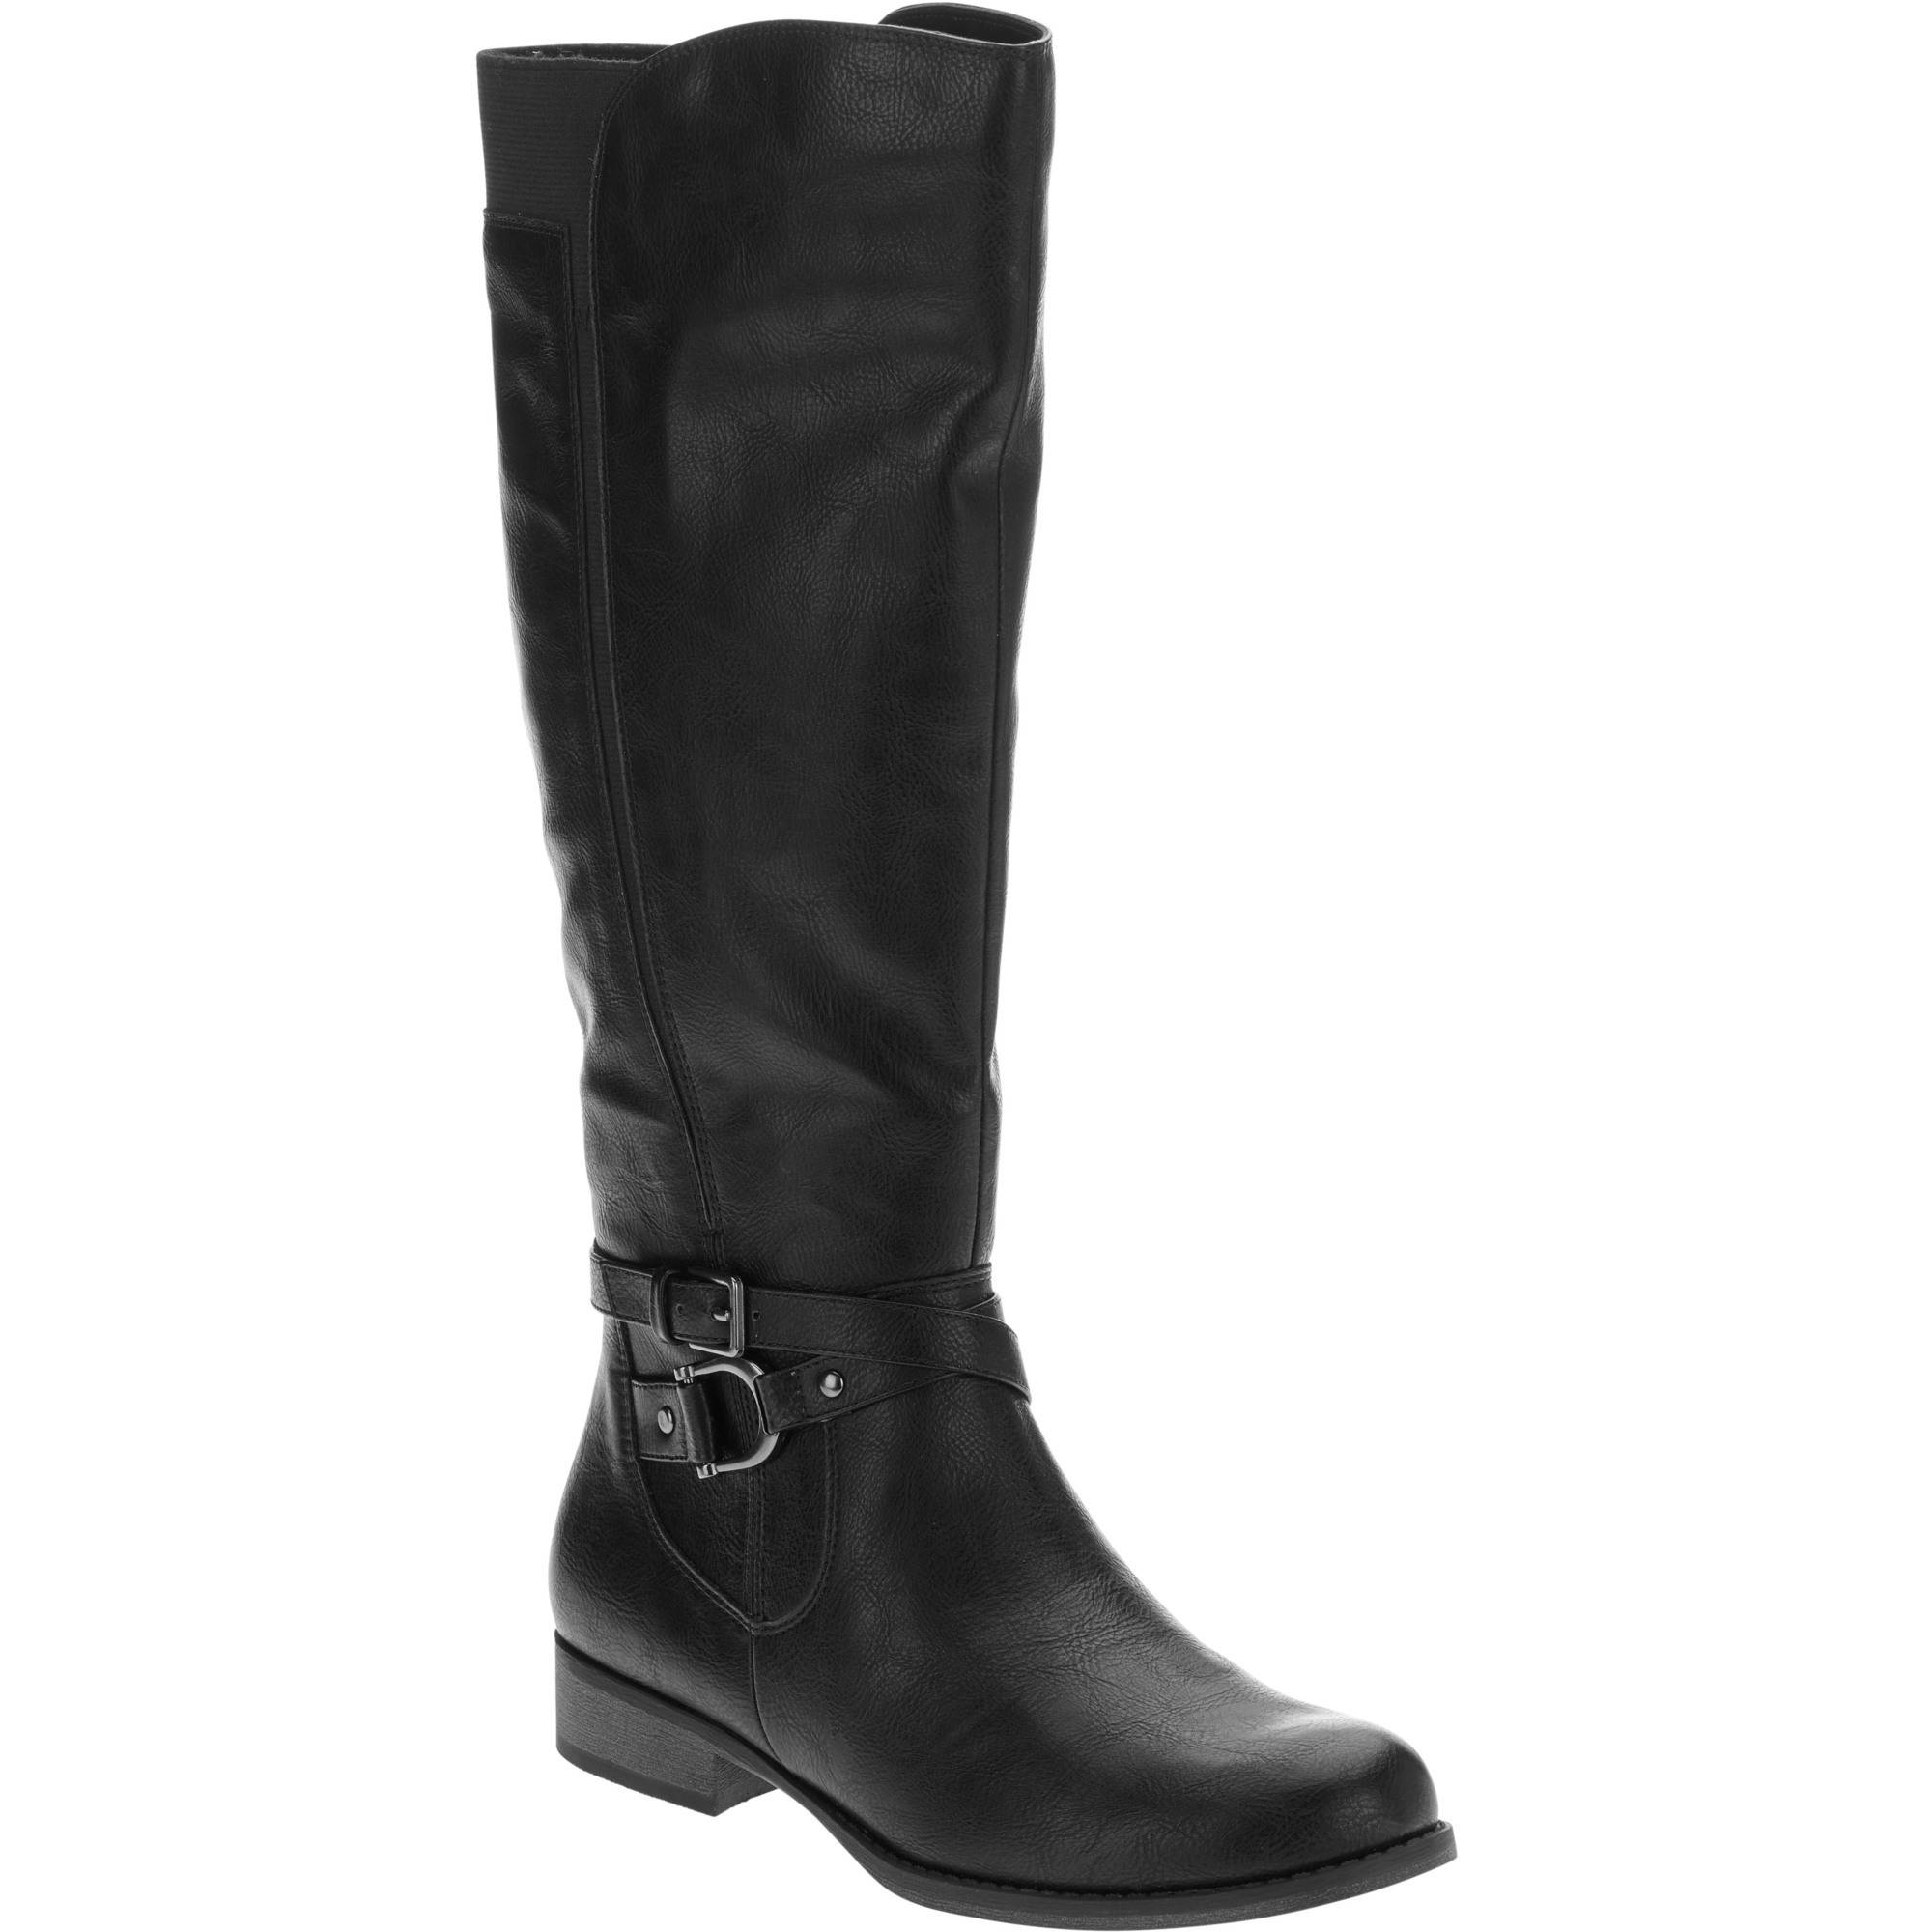 Faded Glory Women's Riding Boot ONLINE ONLY